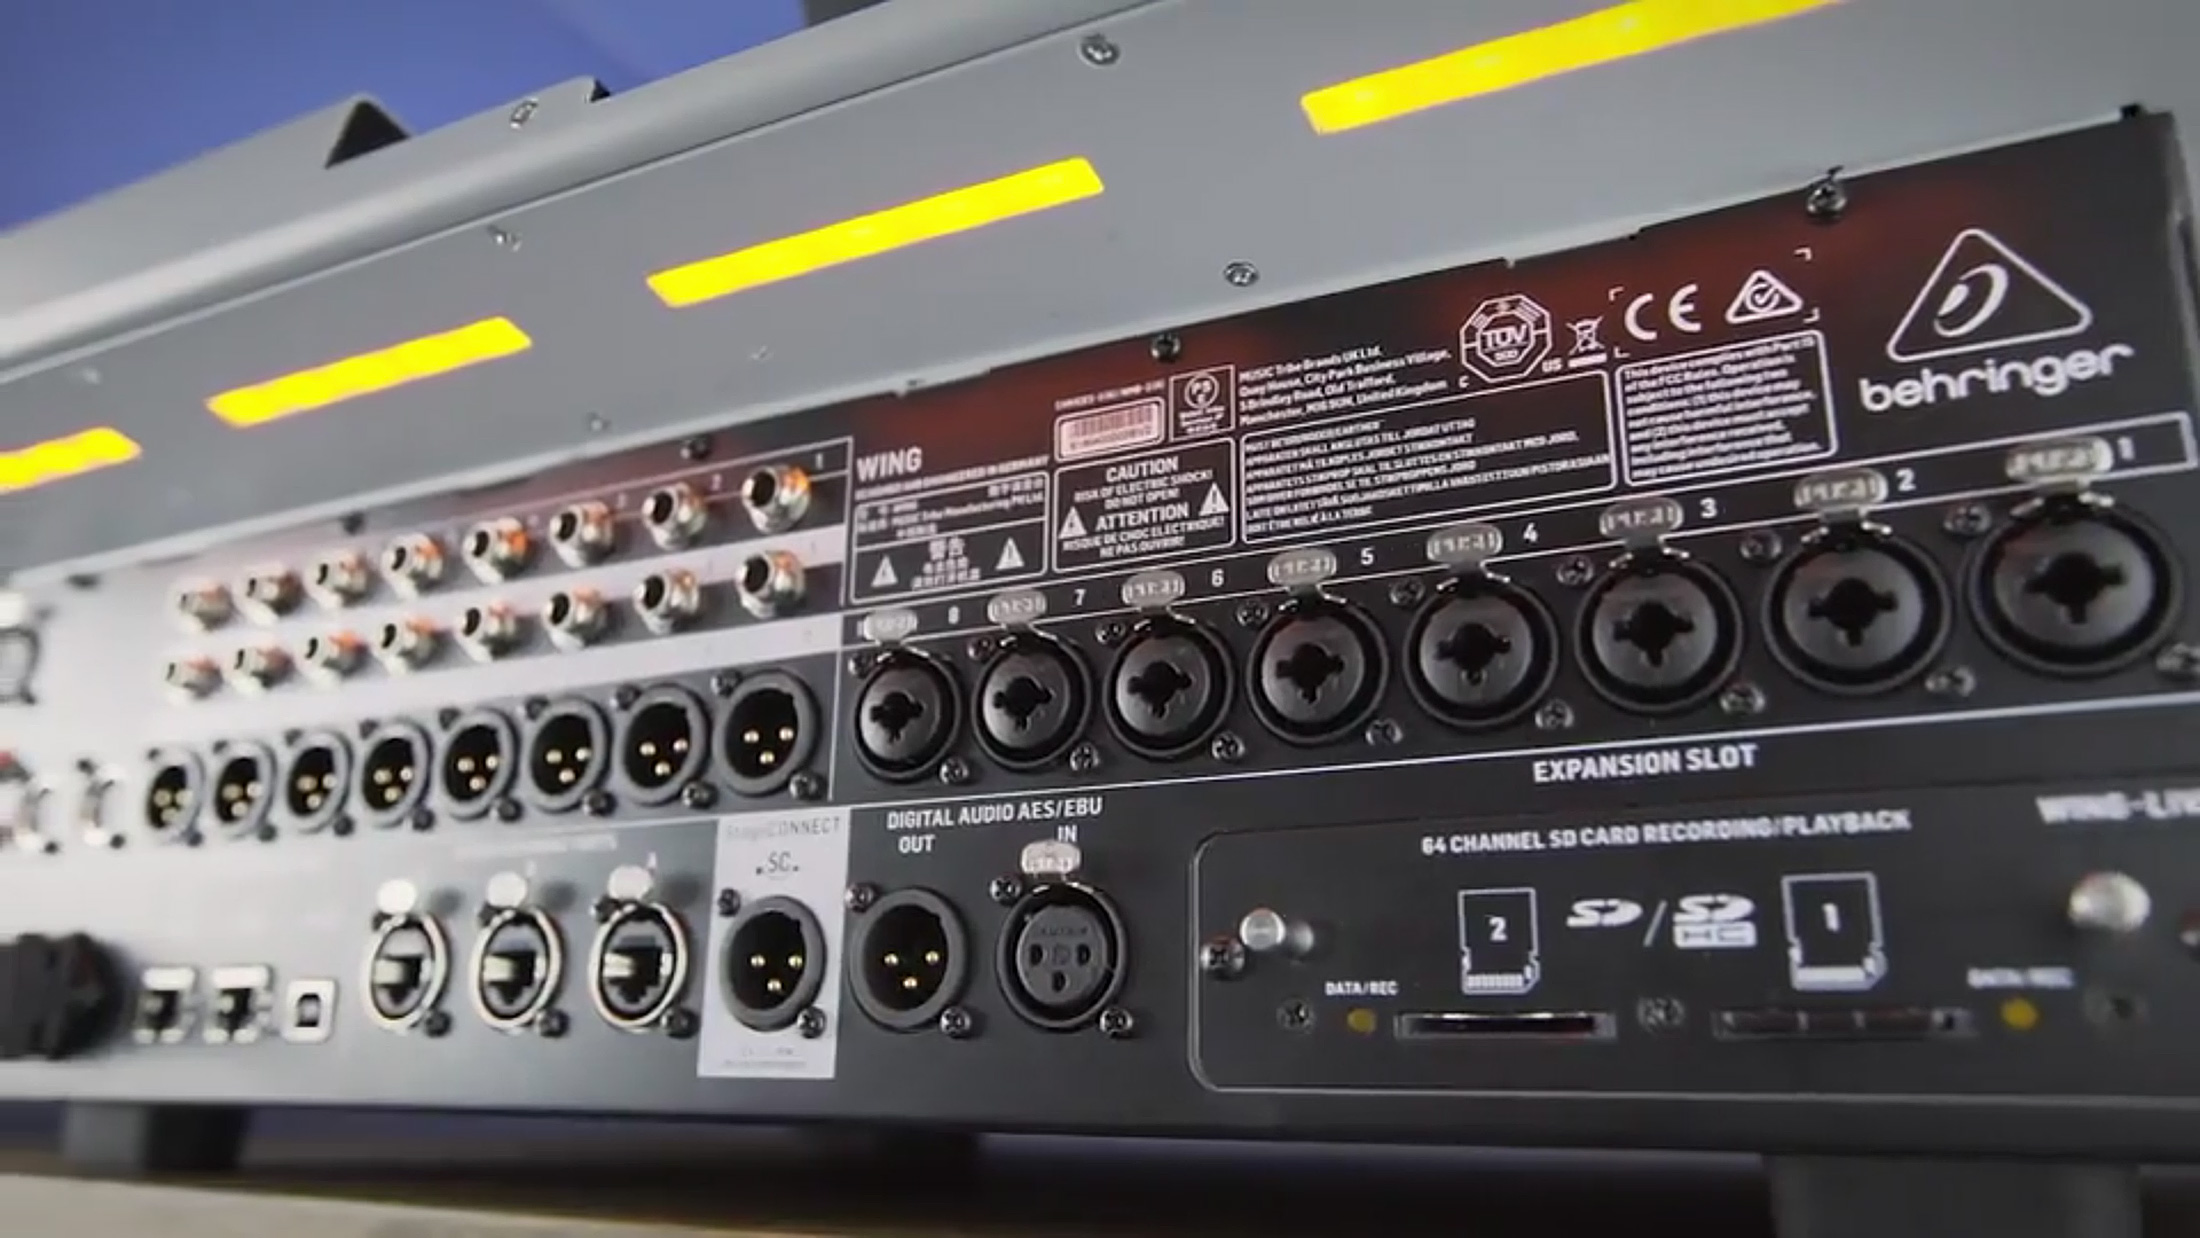 Behringer WING rear MidasPro preamps AES EBU 3xAES50 WING Live